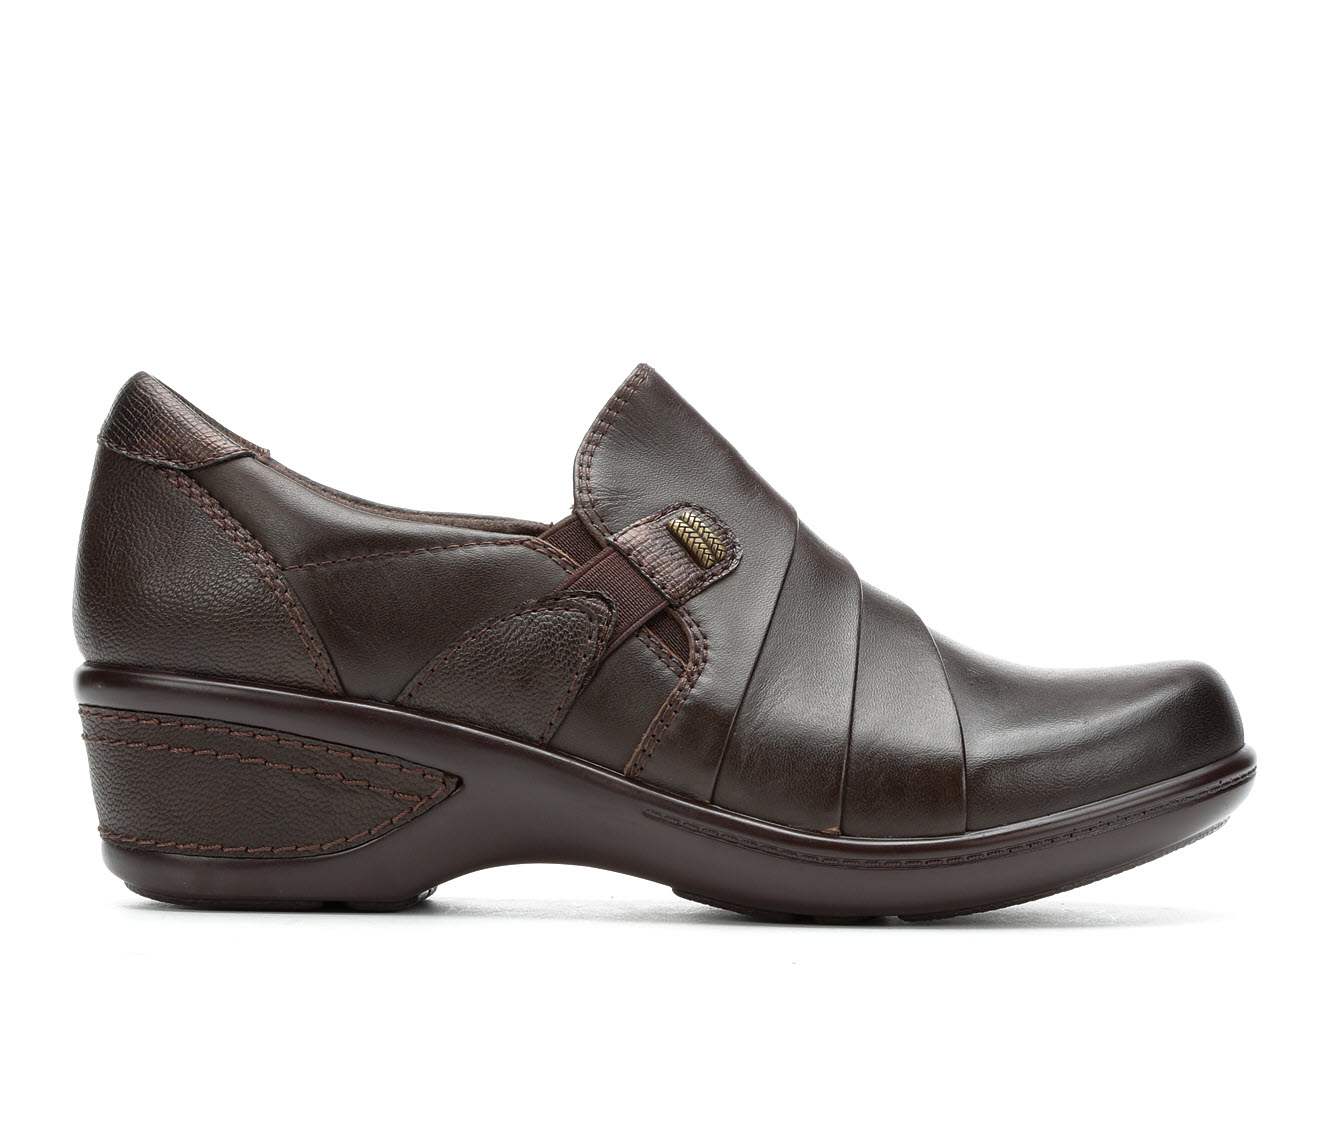 Earth Origins Fay Women's Shoe (Brown Leather)